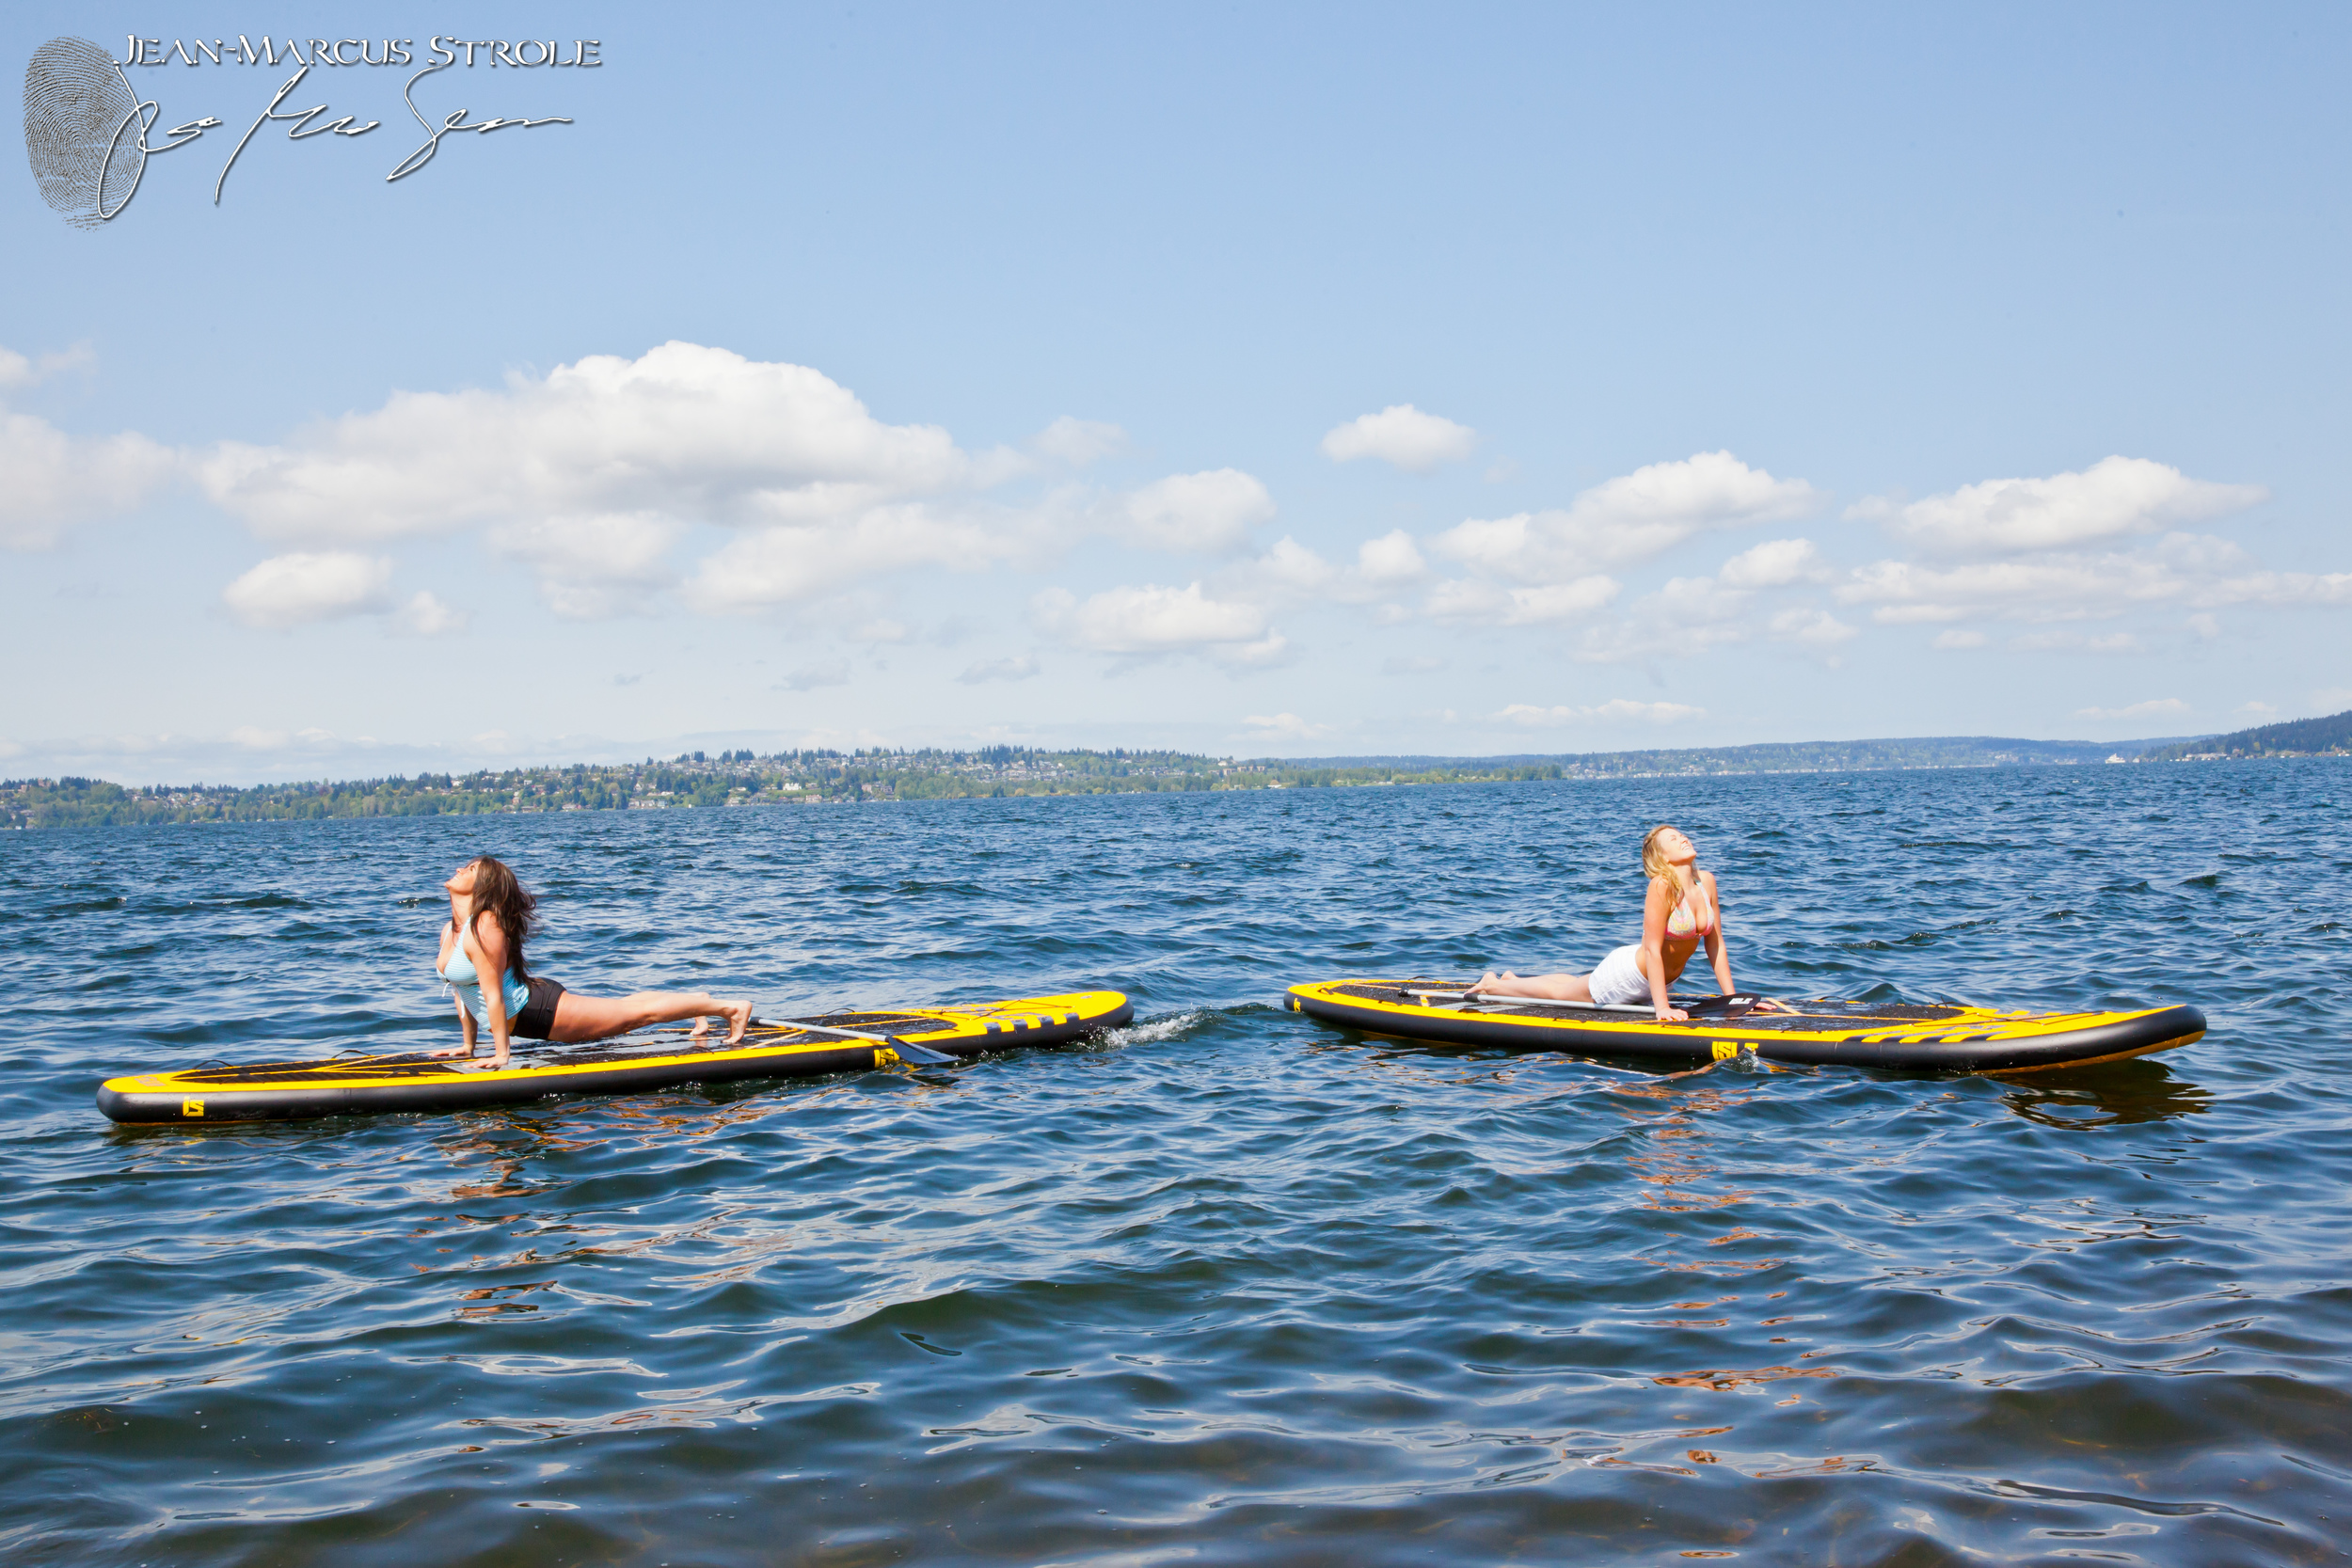 Carillon_Point_Waterfront_Adventures-Jean-Marcus_Strole_Photography-45.jpg